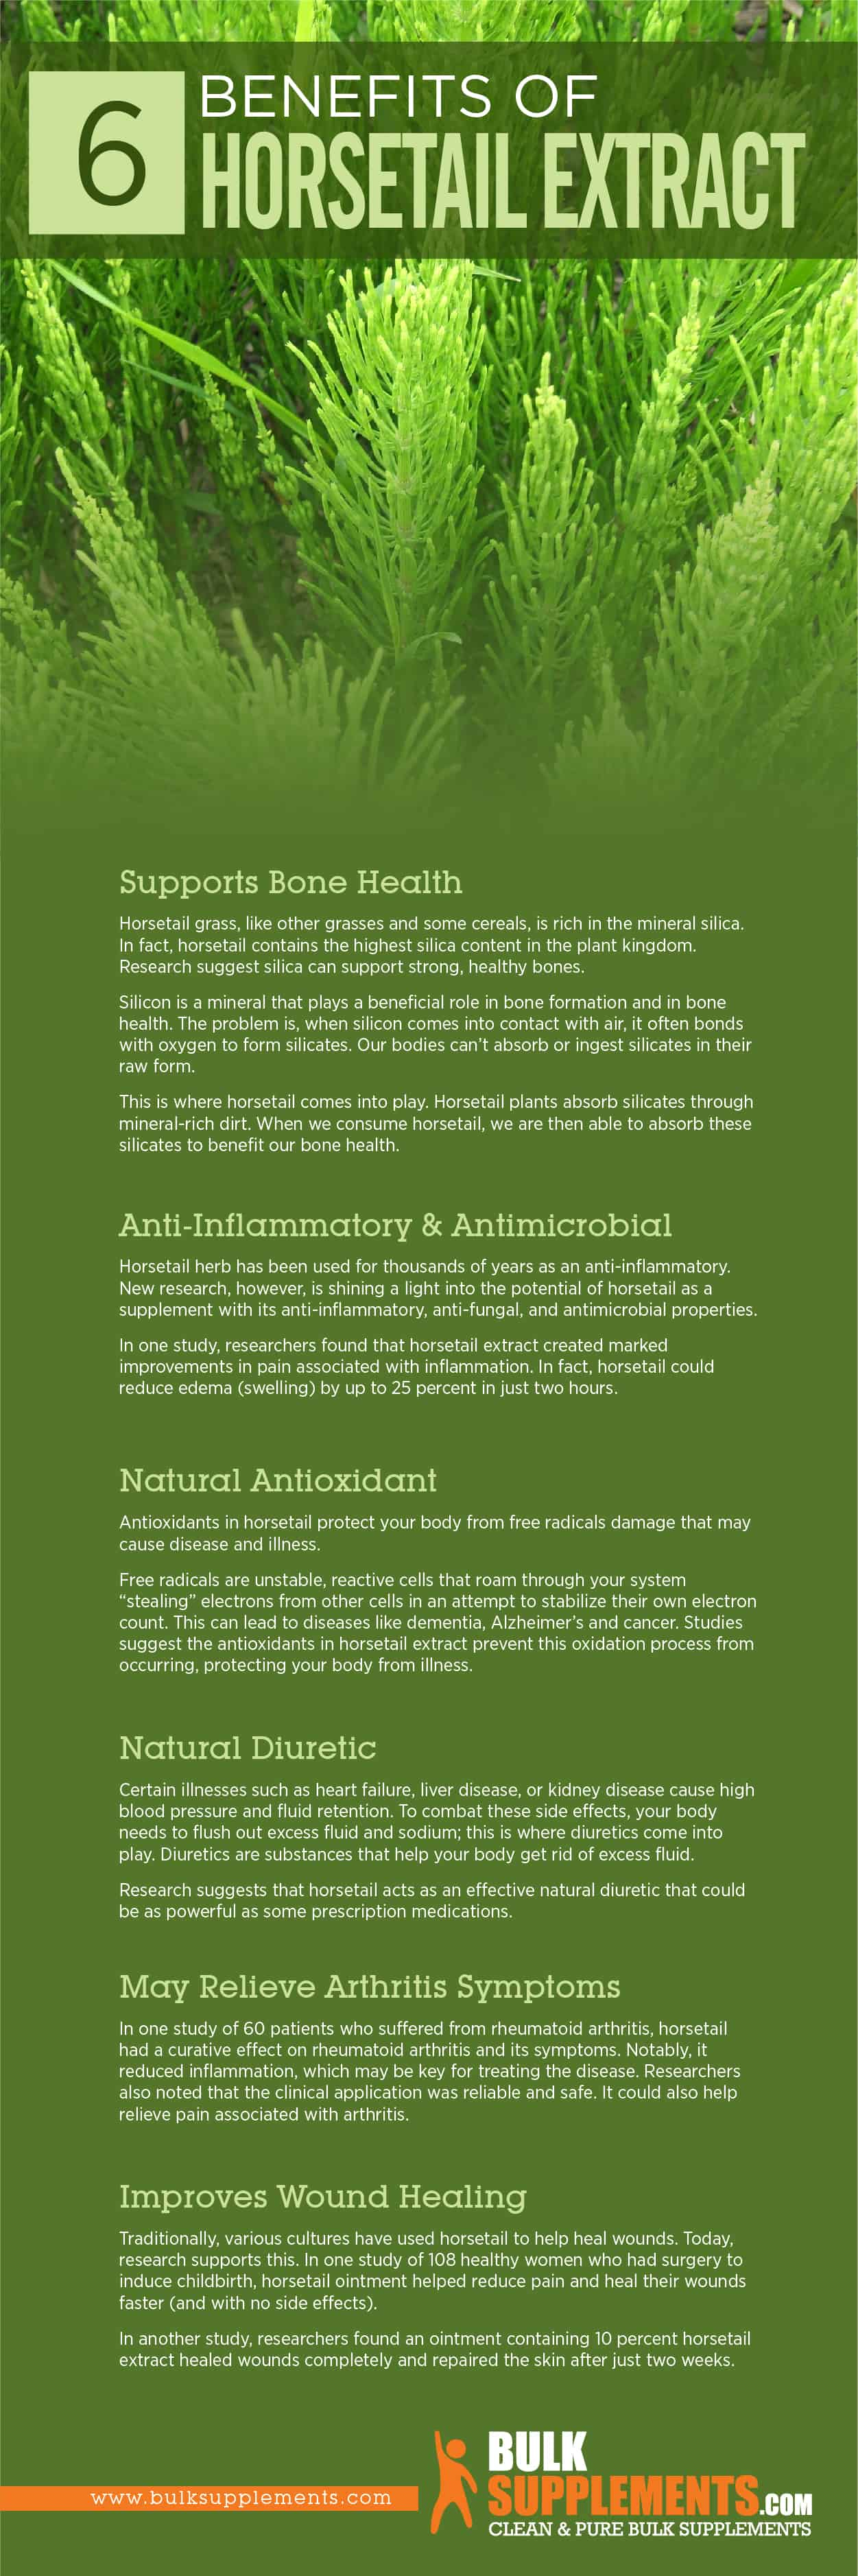 Horsetail Extract Benefits